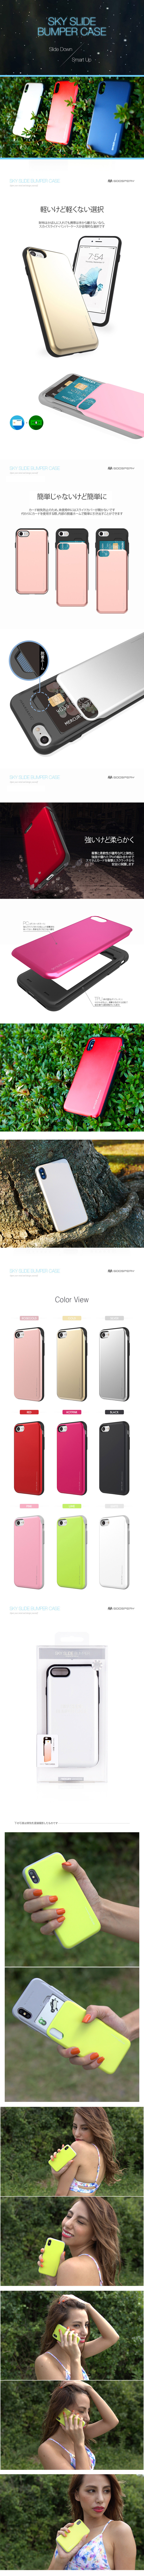 Sky Slide Bumper Casedm Goospery Iphone 7 Case Black Iphonex Iphone8 Iphone8plus Iphone7 Iphone7plus Iphone6 Iphone6plus